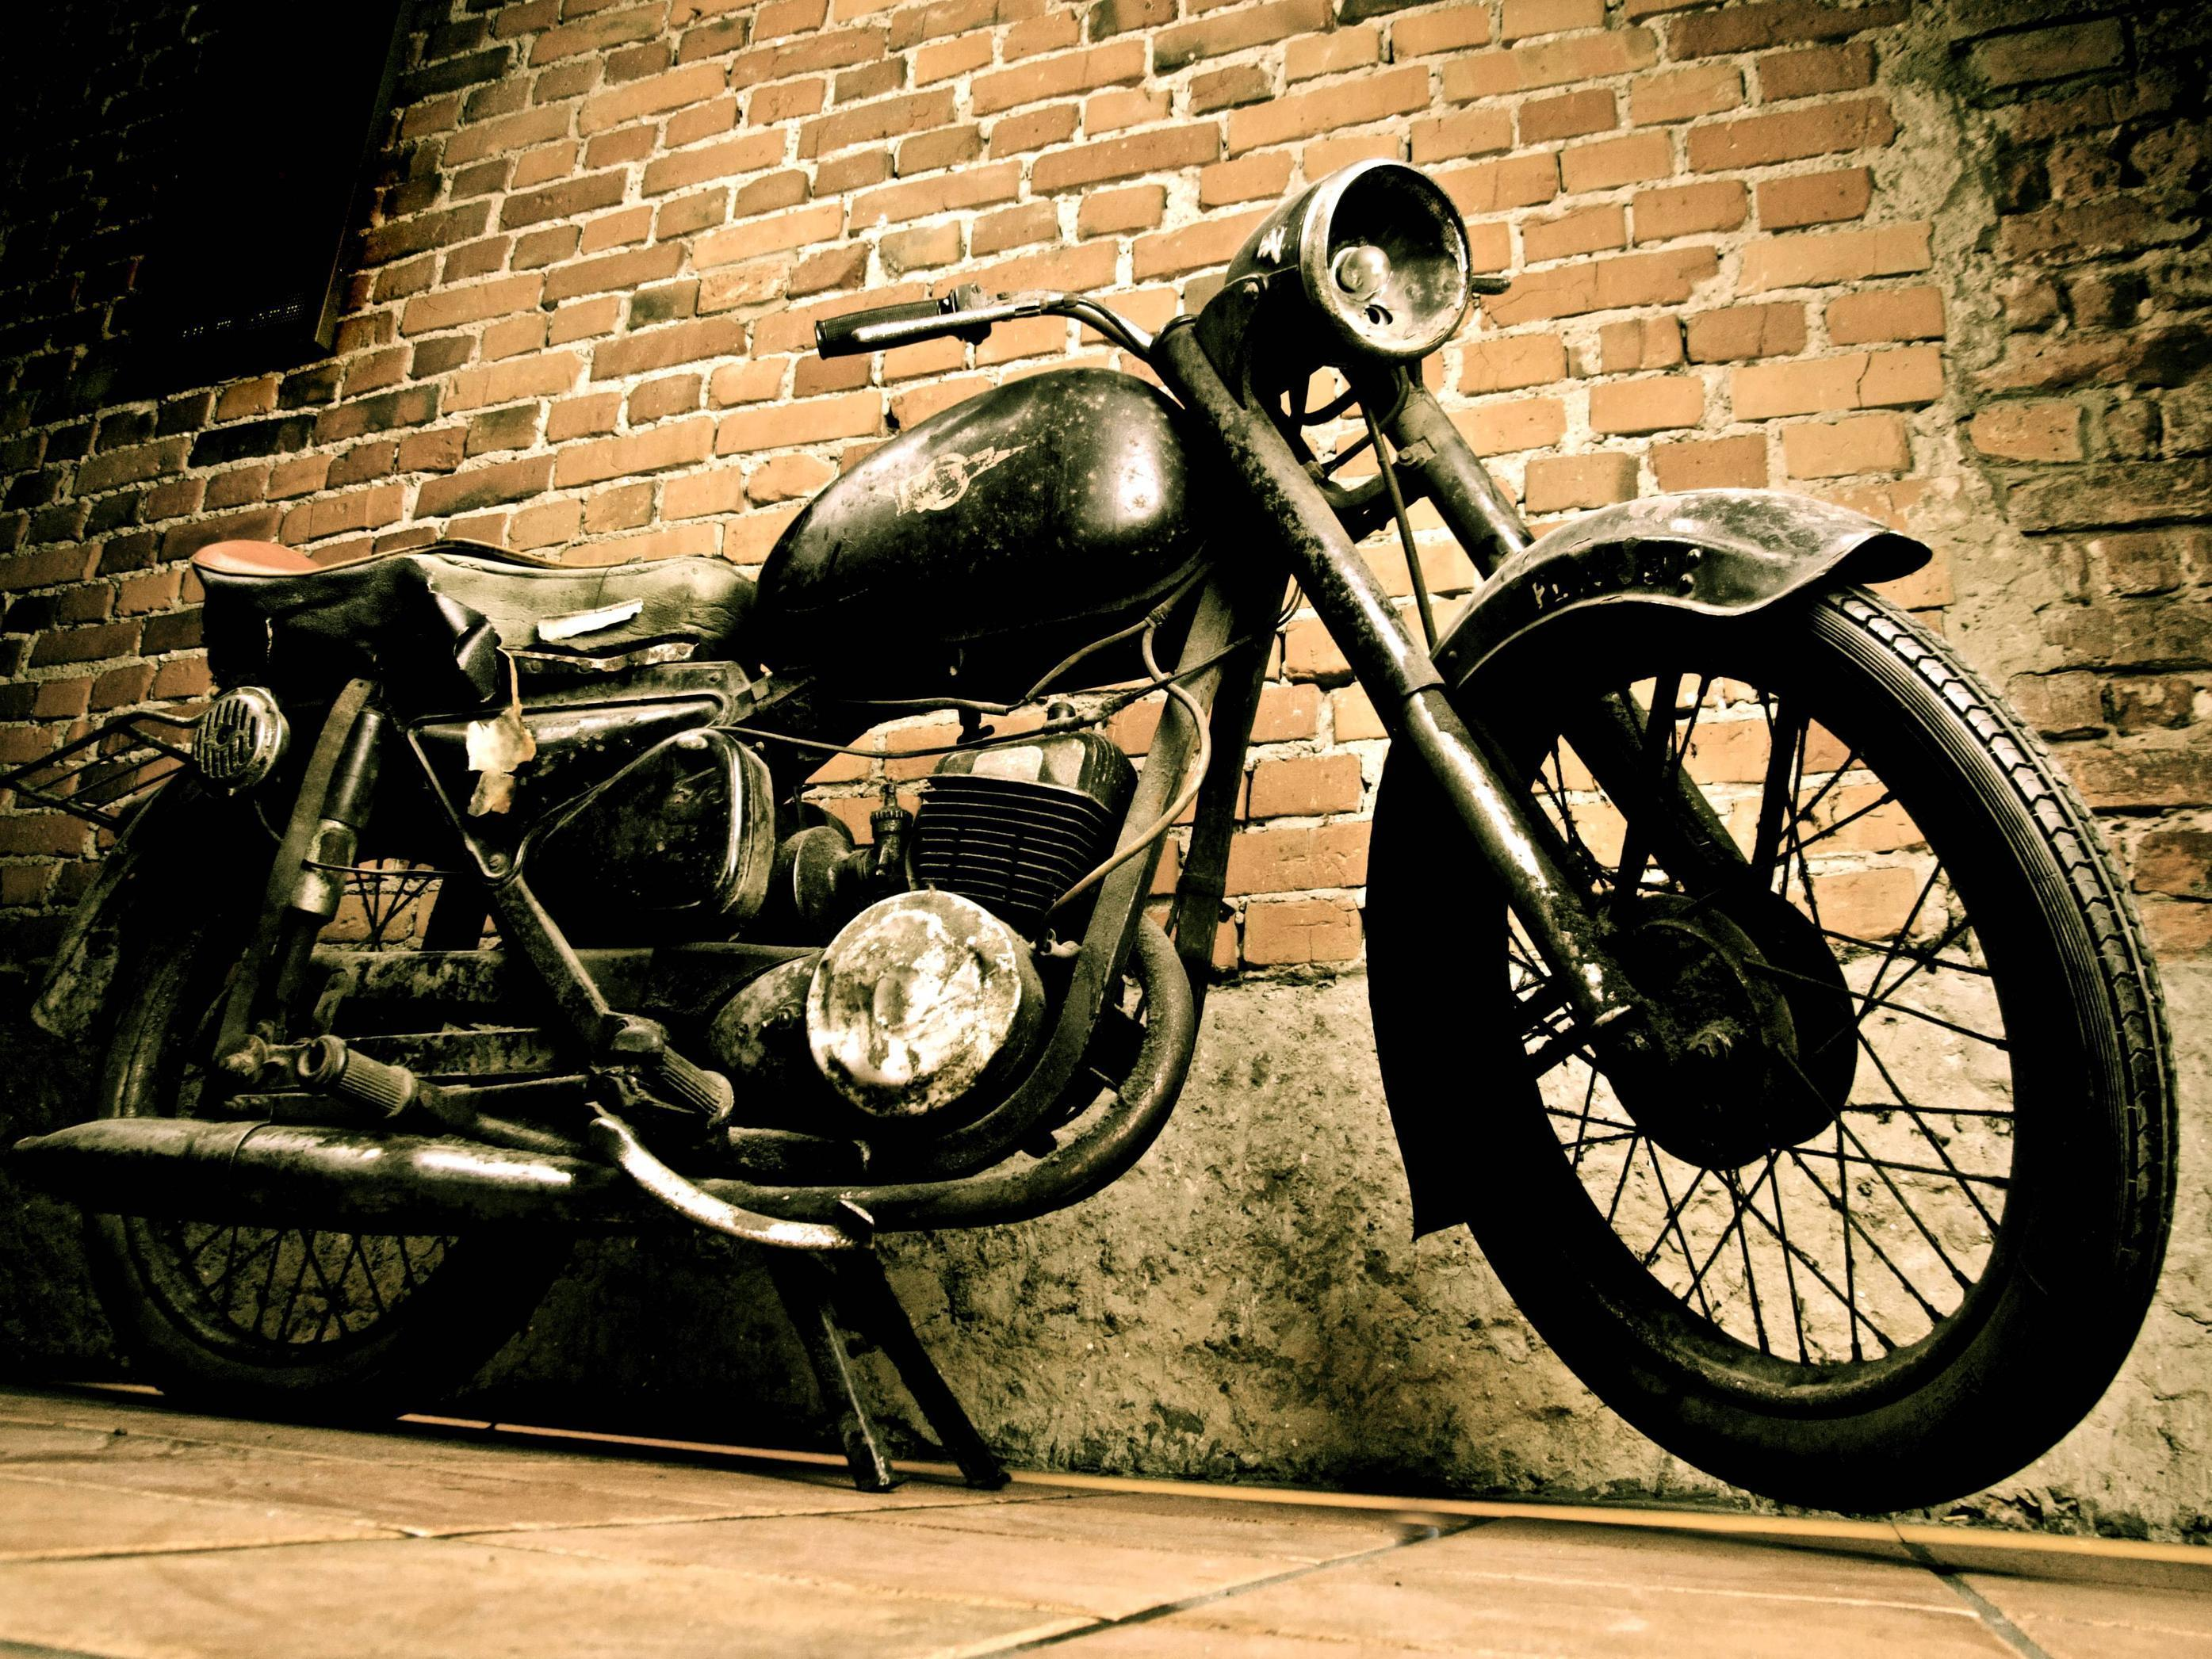 Classic Motorcycle Wallpapers   Top Classic Motorcycle 2790x2093